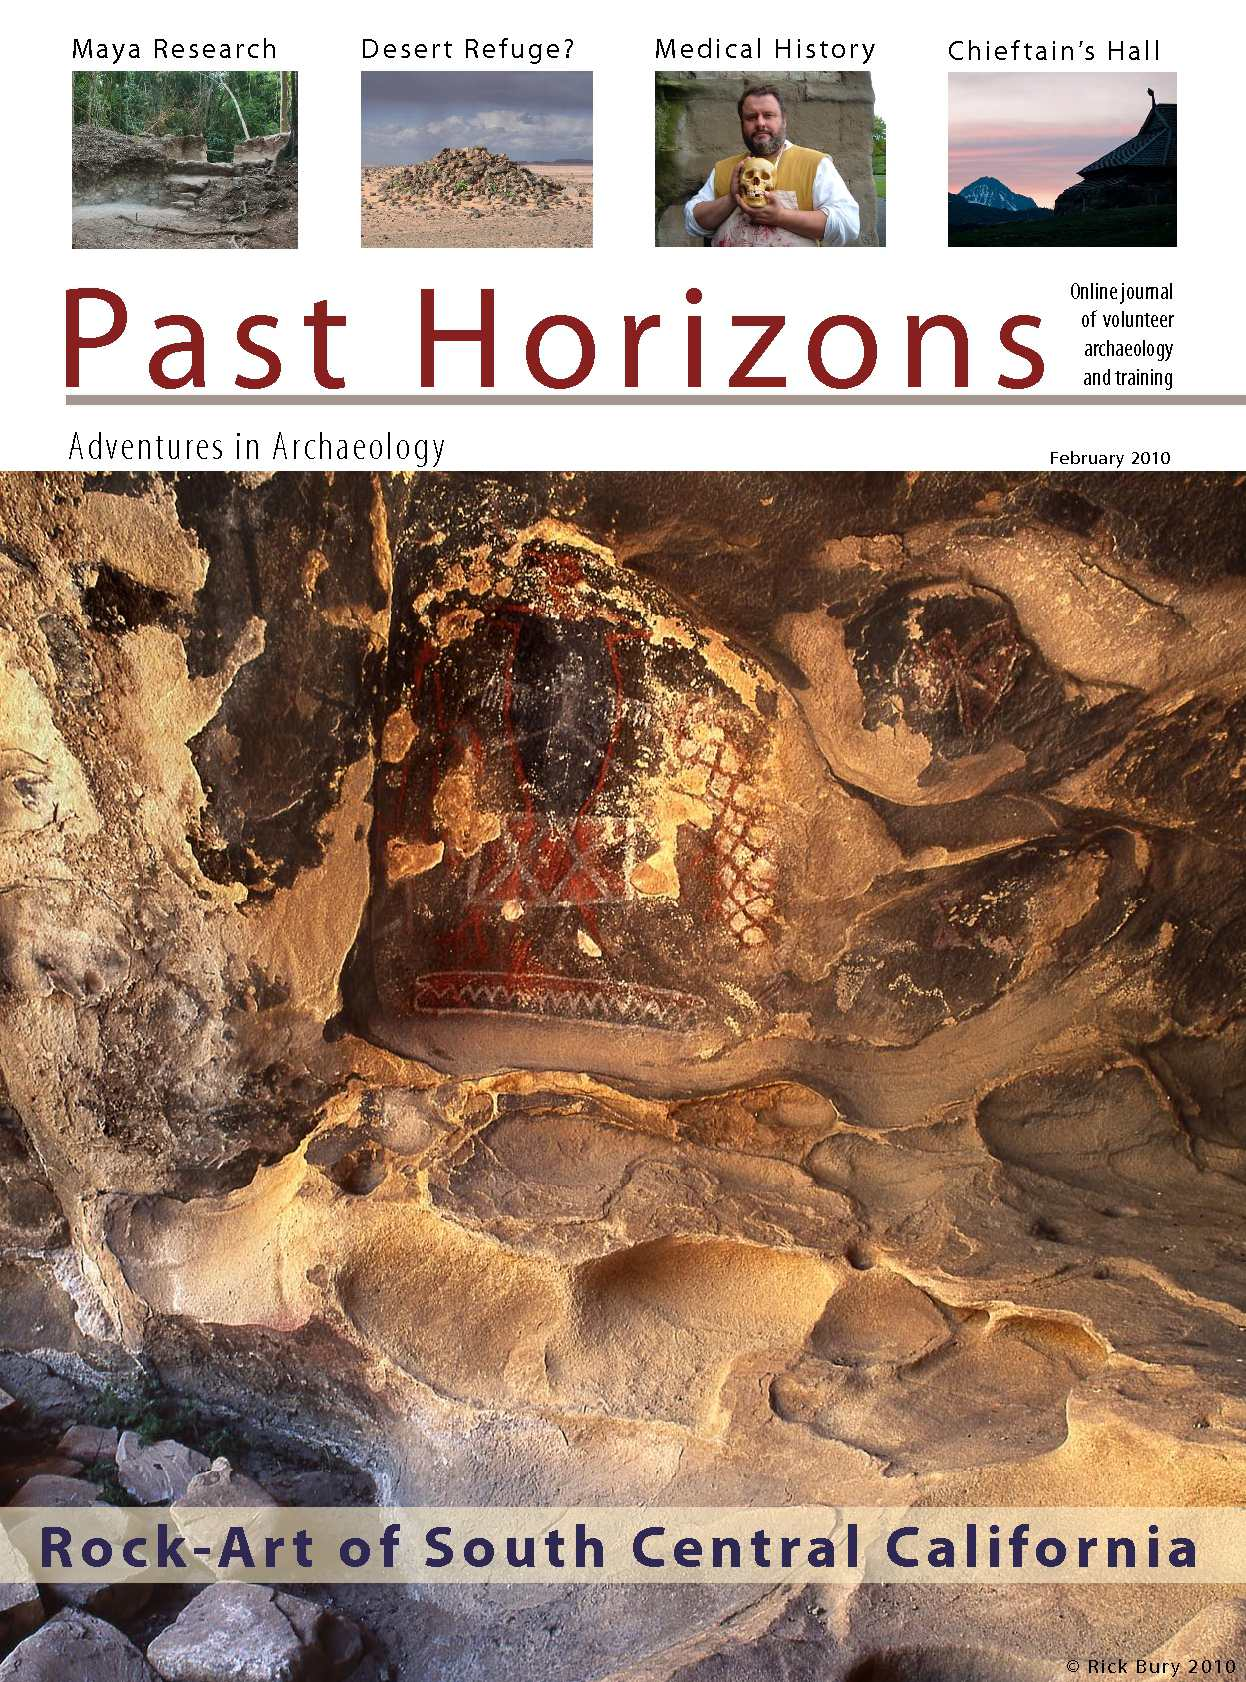 Calaméo - 11: Adventures in Archaeology - Past Horizons